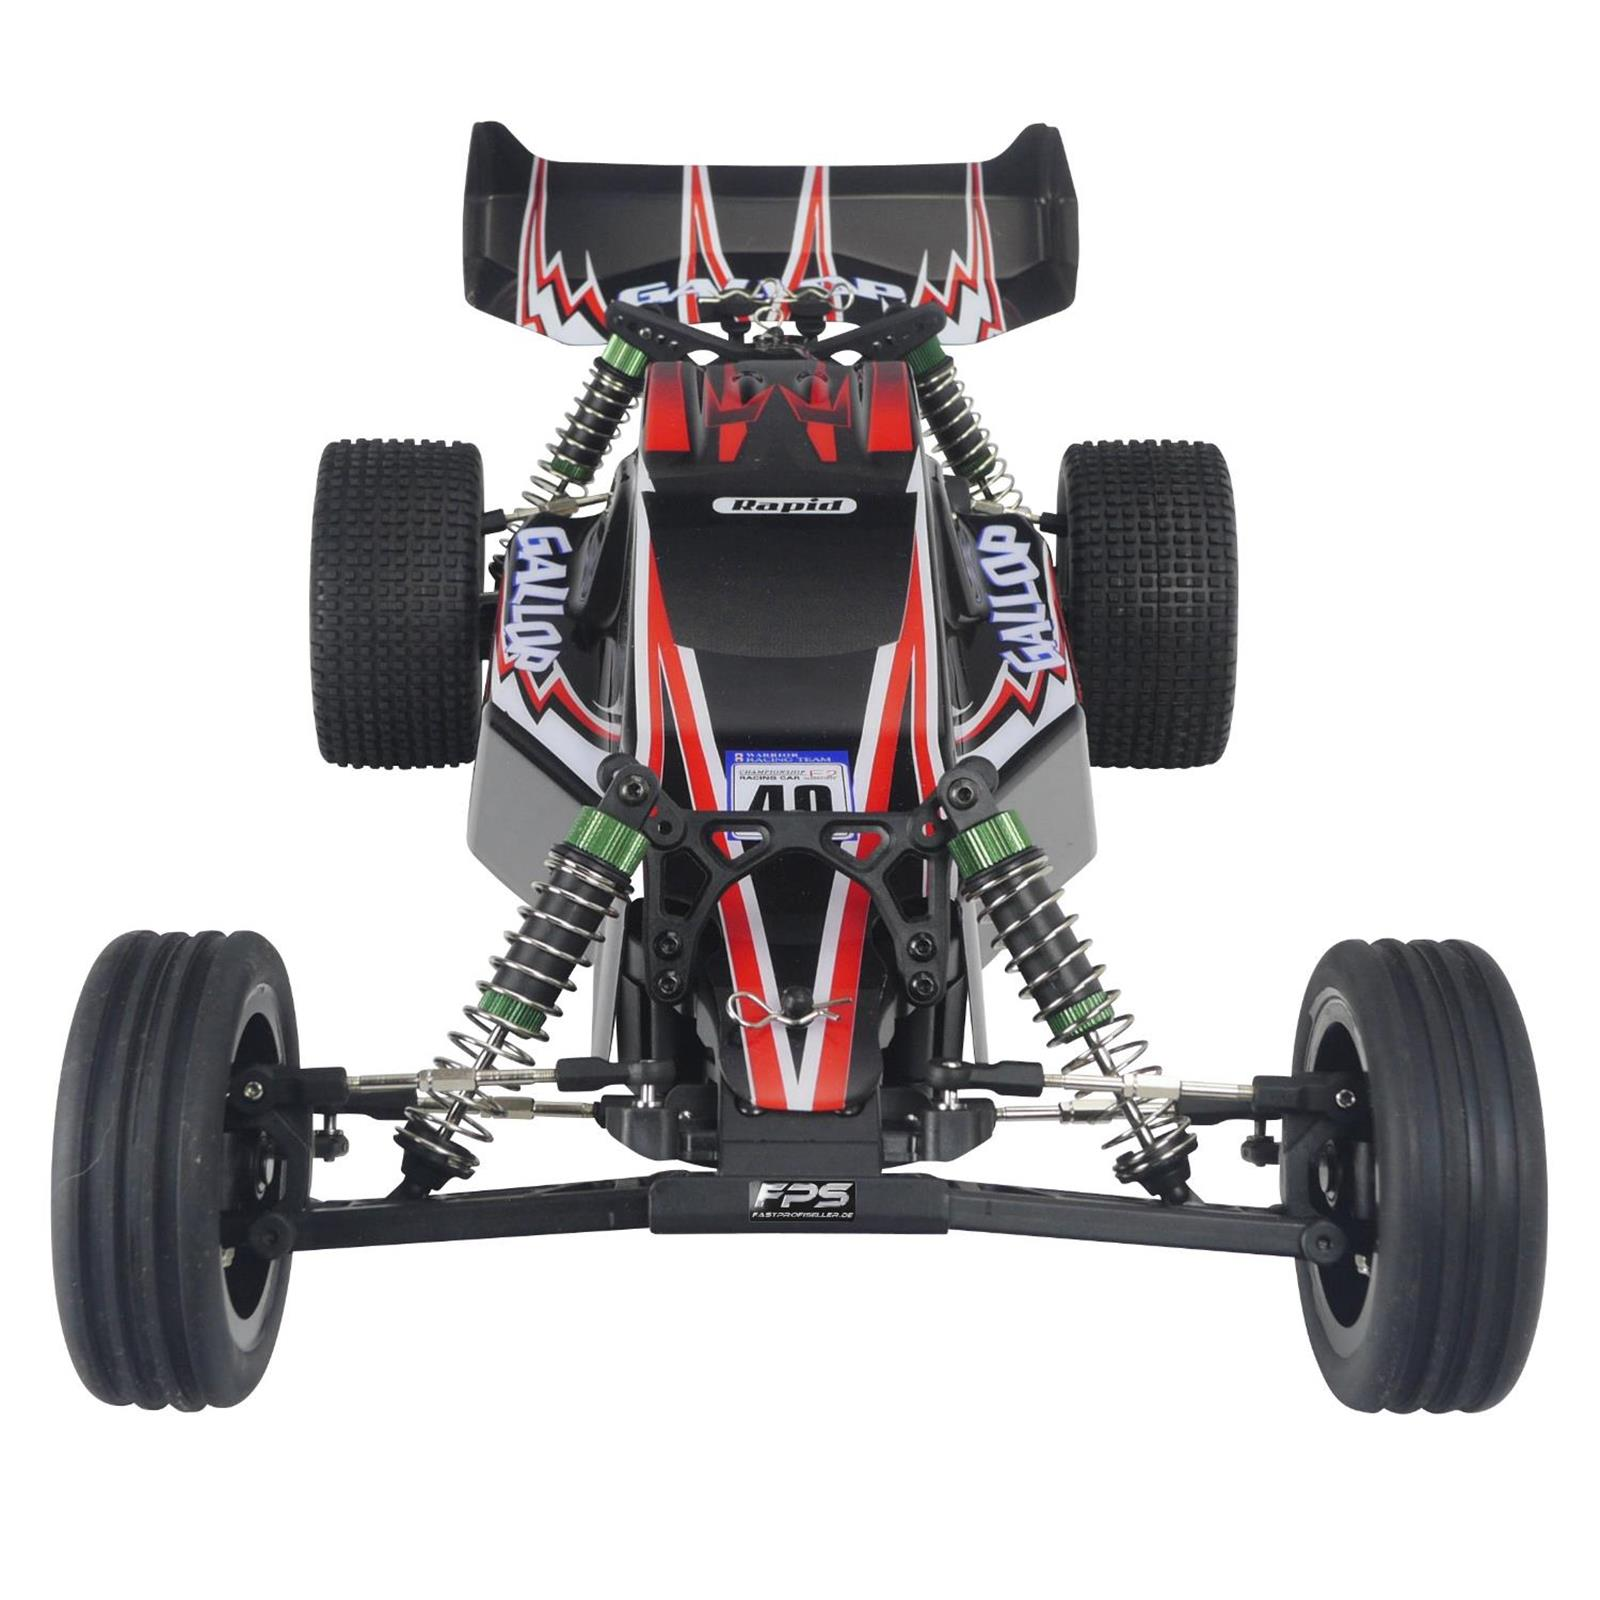 Rayline Funrace 03 FR03 RC Buggy mehrere Ansichten